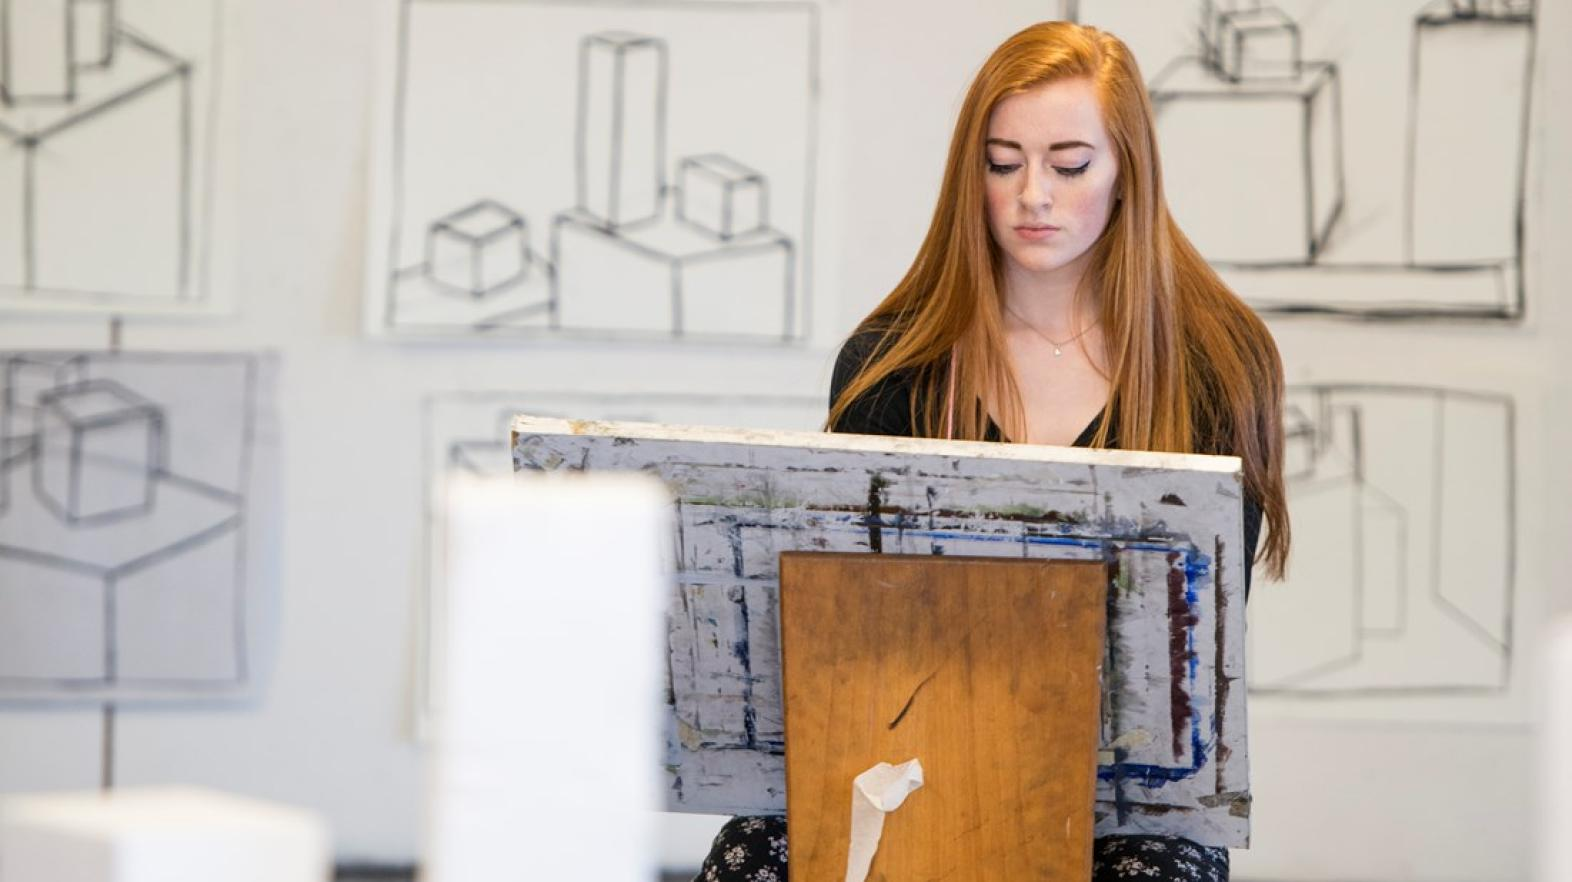 Young woman uses art studio space to create art